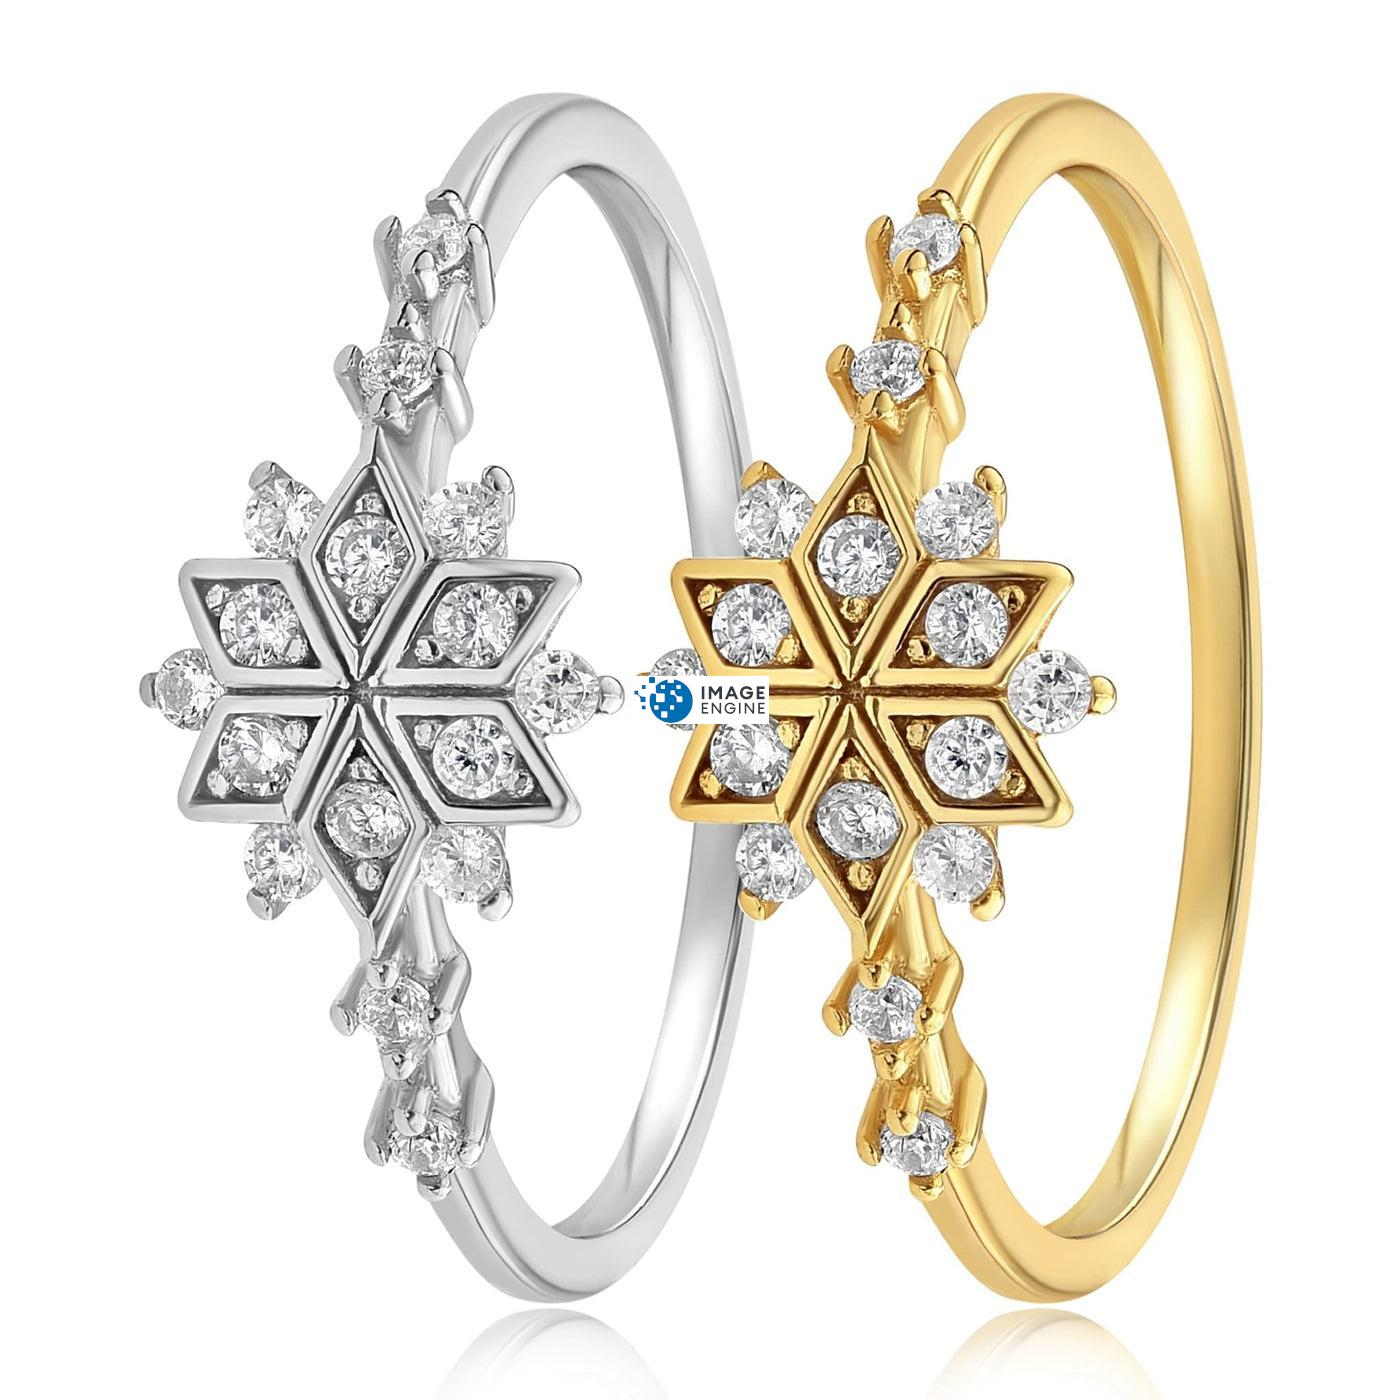 Sophia Snowflake Ring - Side by Side - 18K Yellow Gold and 925 Sterling Silver